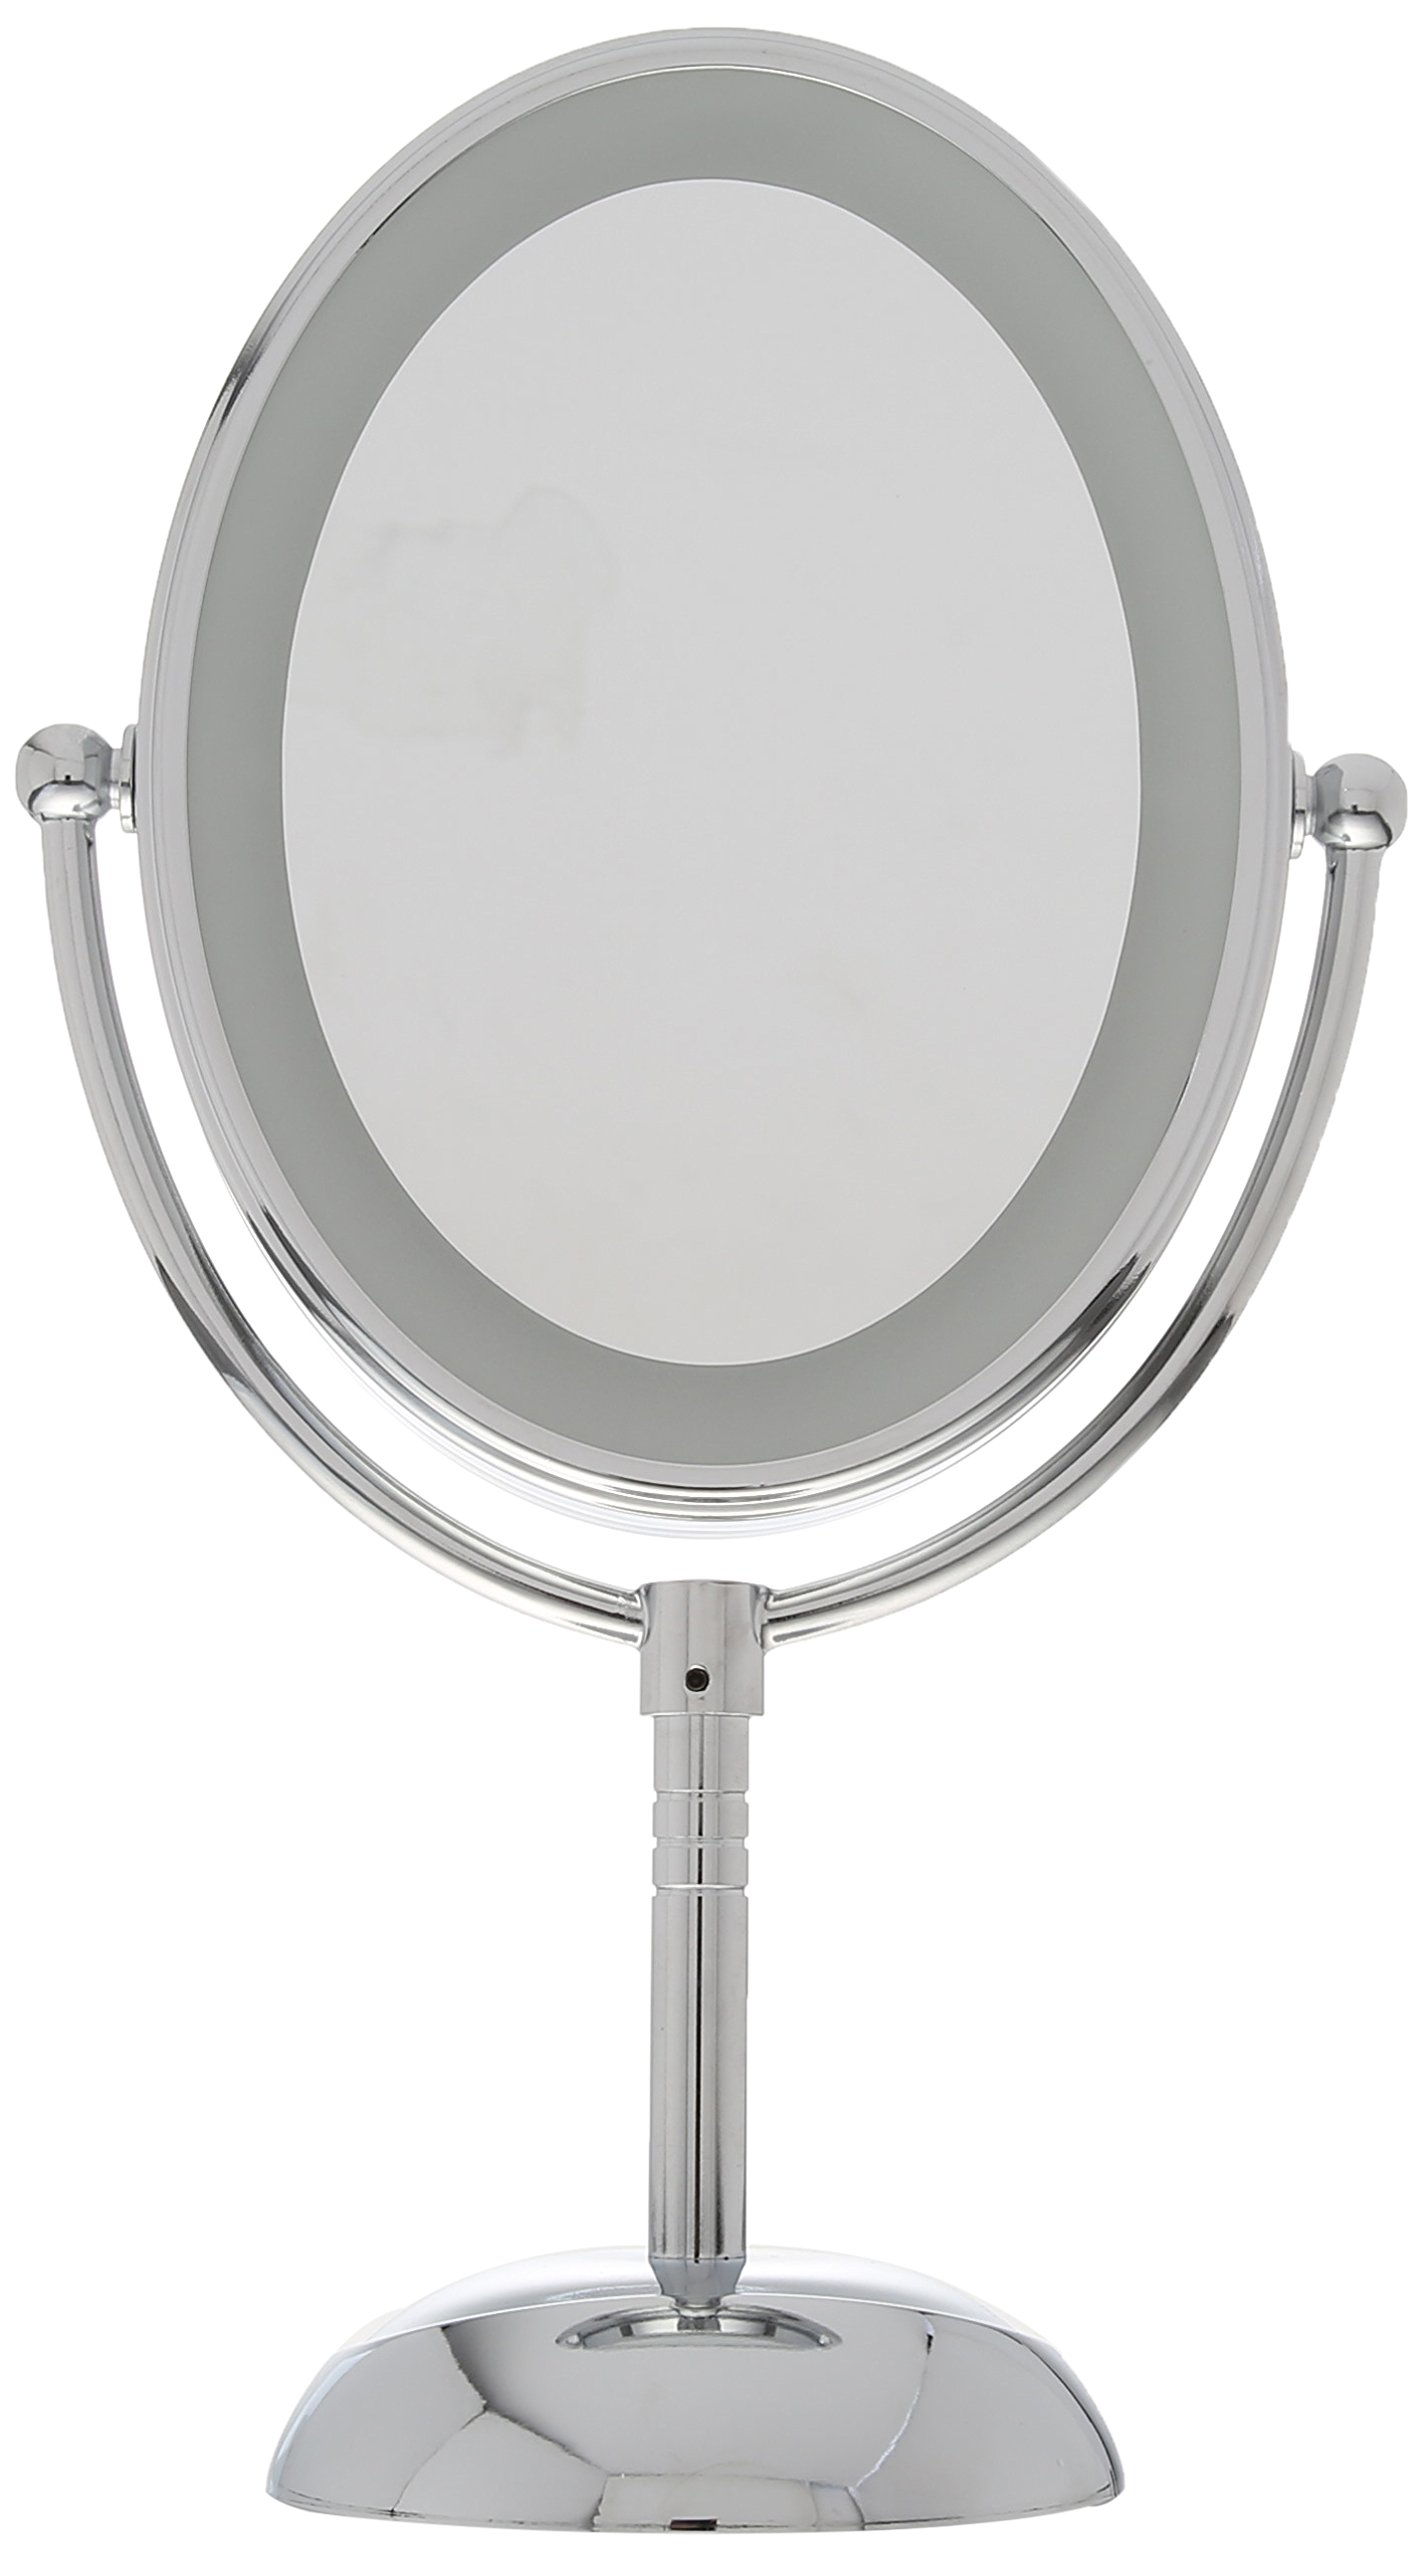 Conair Oval Shaped LED Double-Sided Lighted Makeup Mirror; 1x/7x magnification; Polished Chrome Finish by Conair (Image #2)